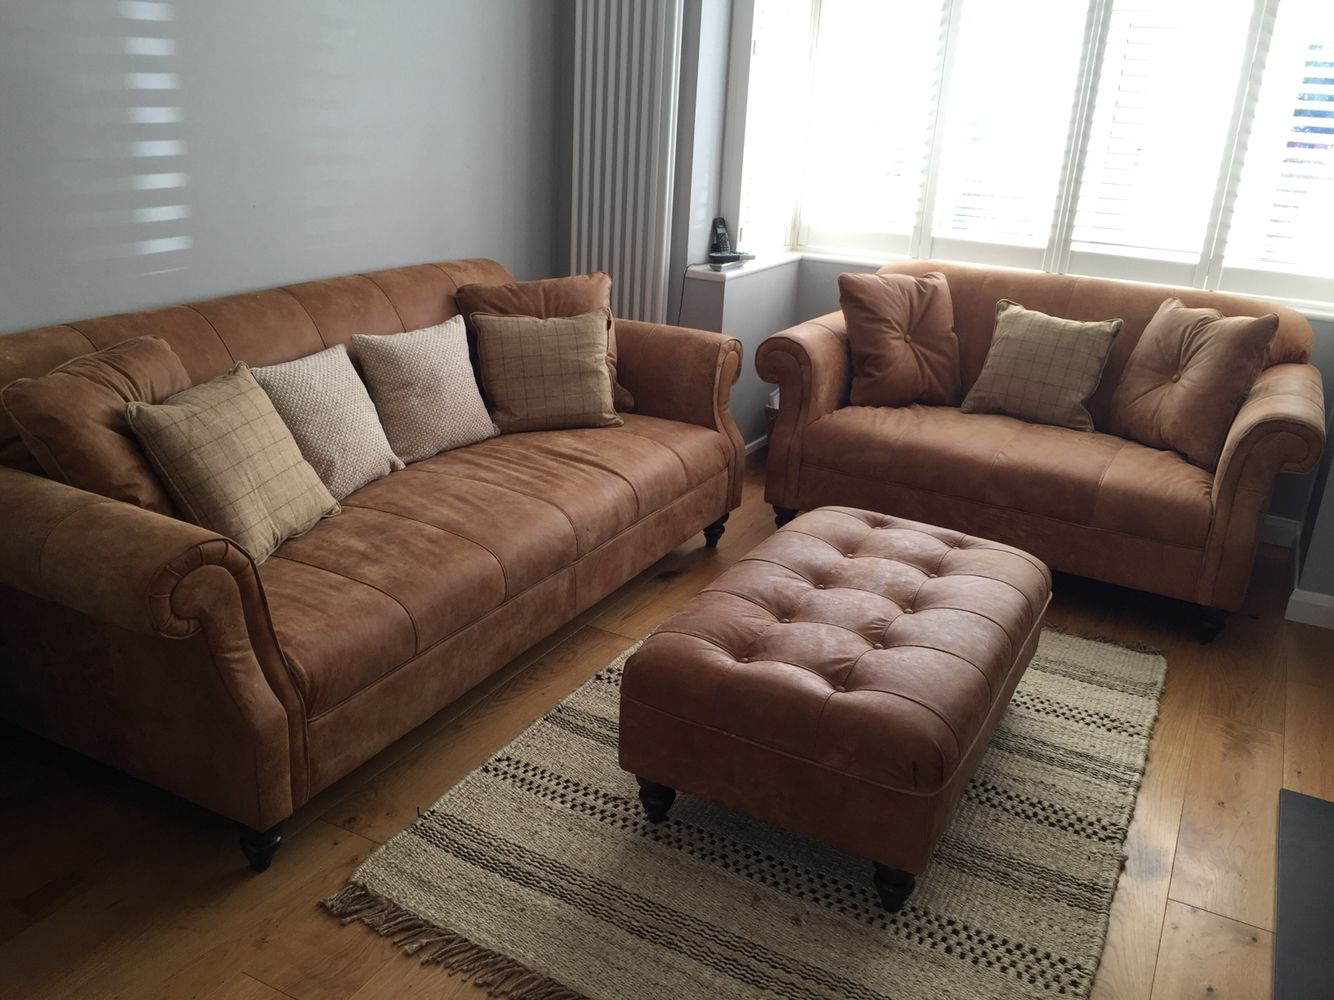 Living room ideas tan sofa - Room Tan Leather Sofa